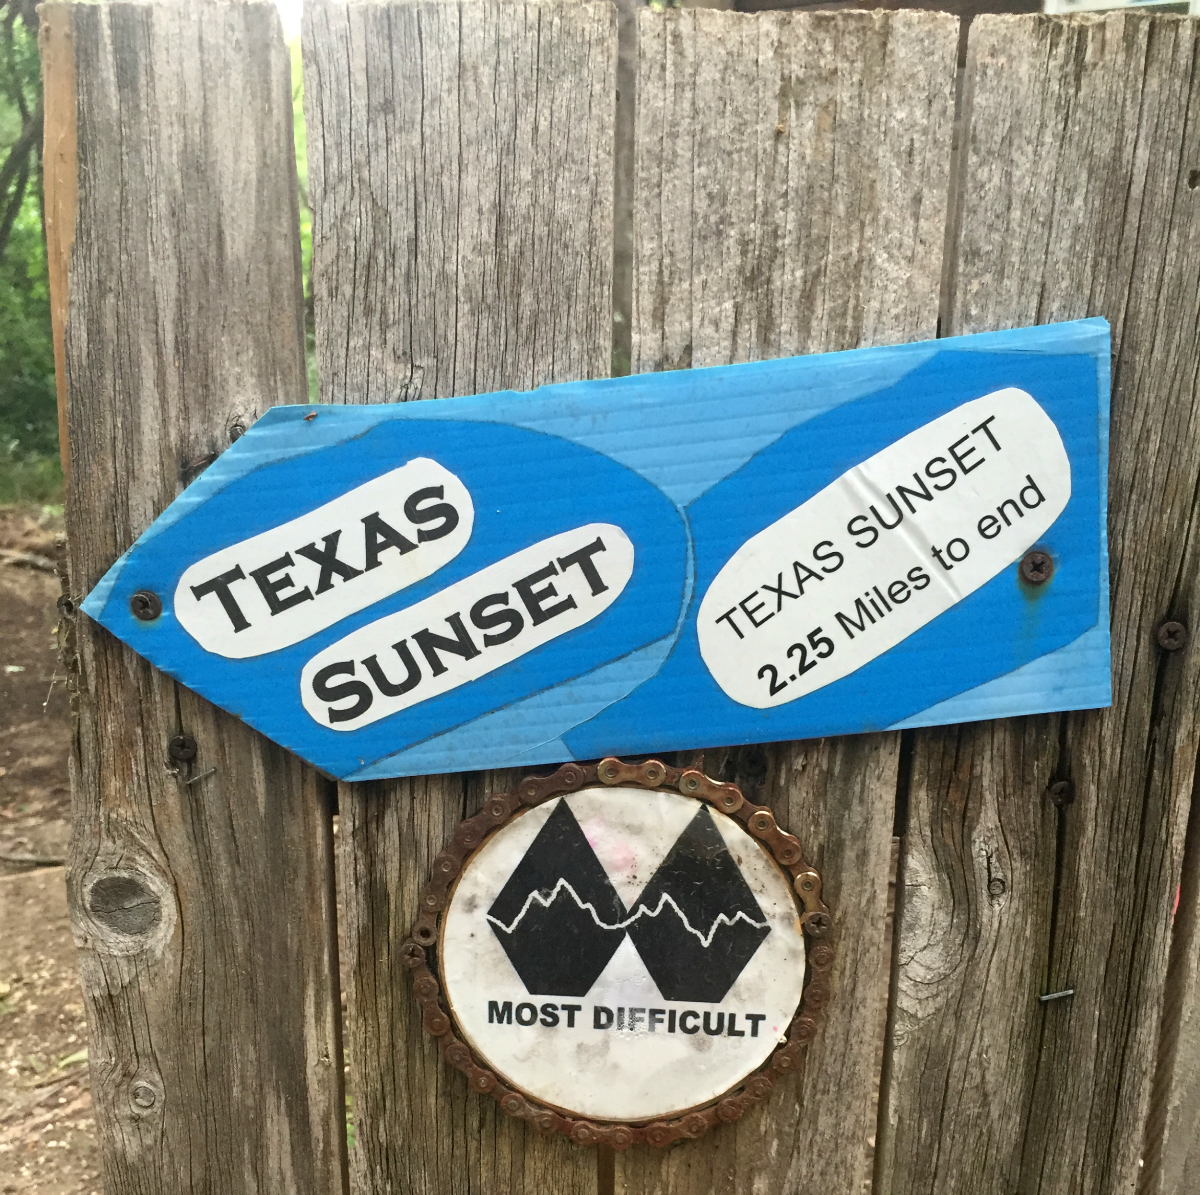 Texas Sunset trail at Big Cedar